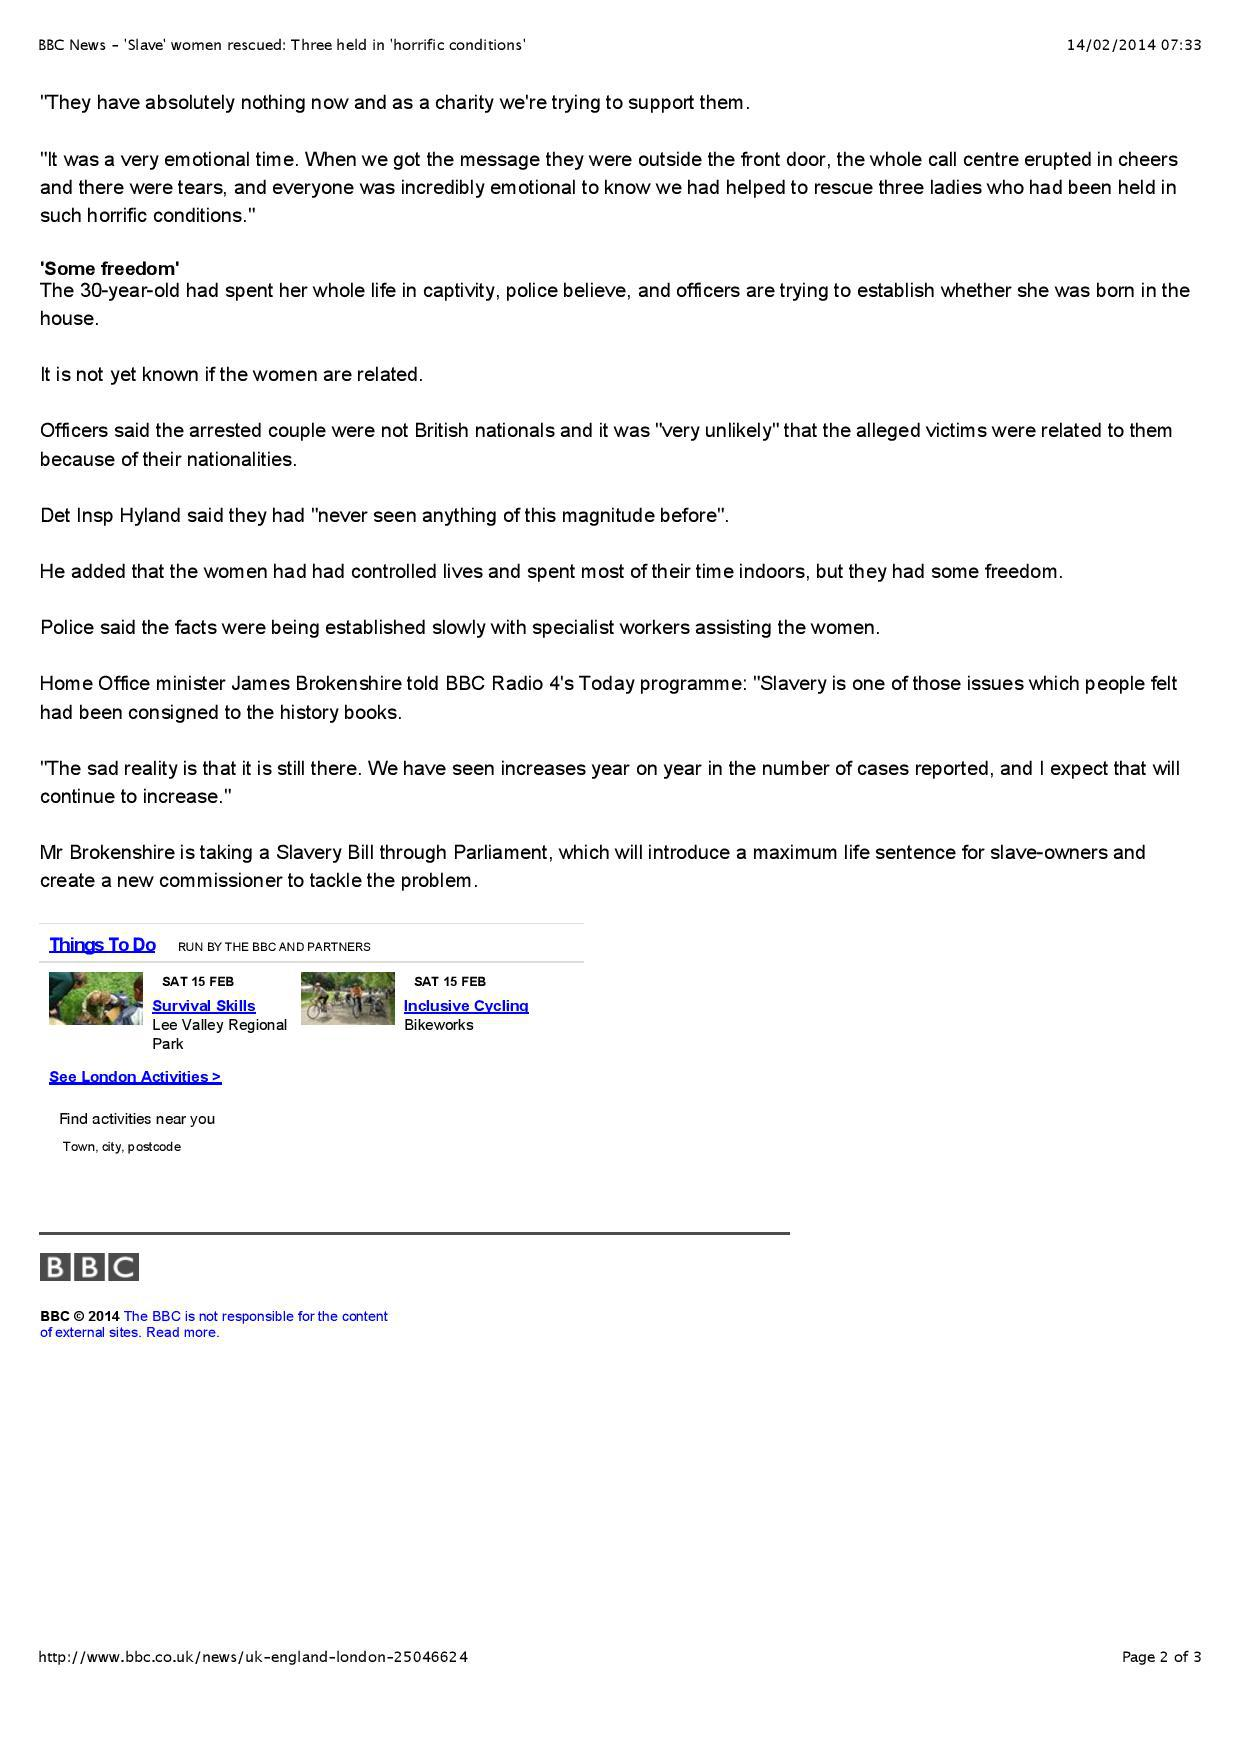 bbc-news-slave-women-rescued-three-held-in-horrific-conditions-page-002